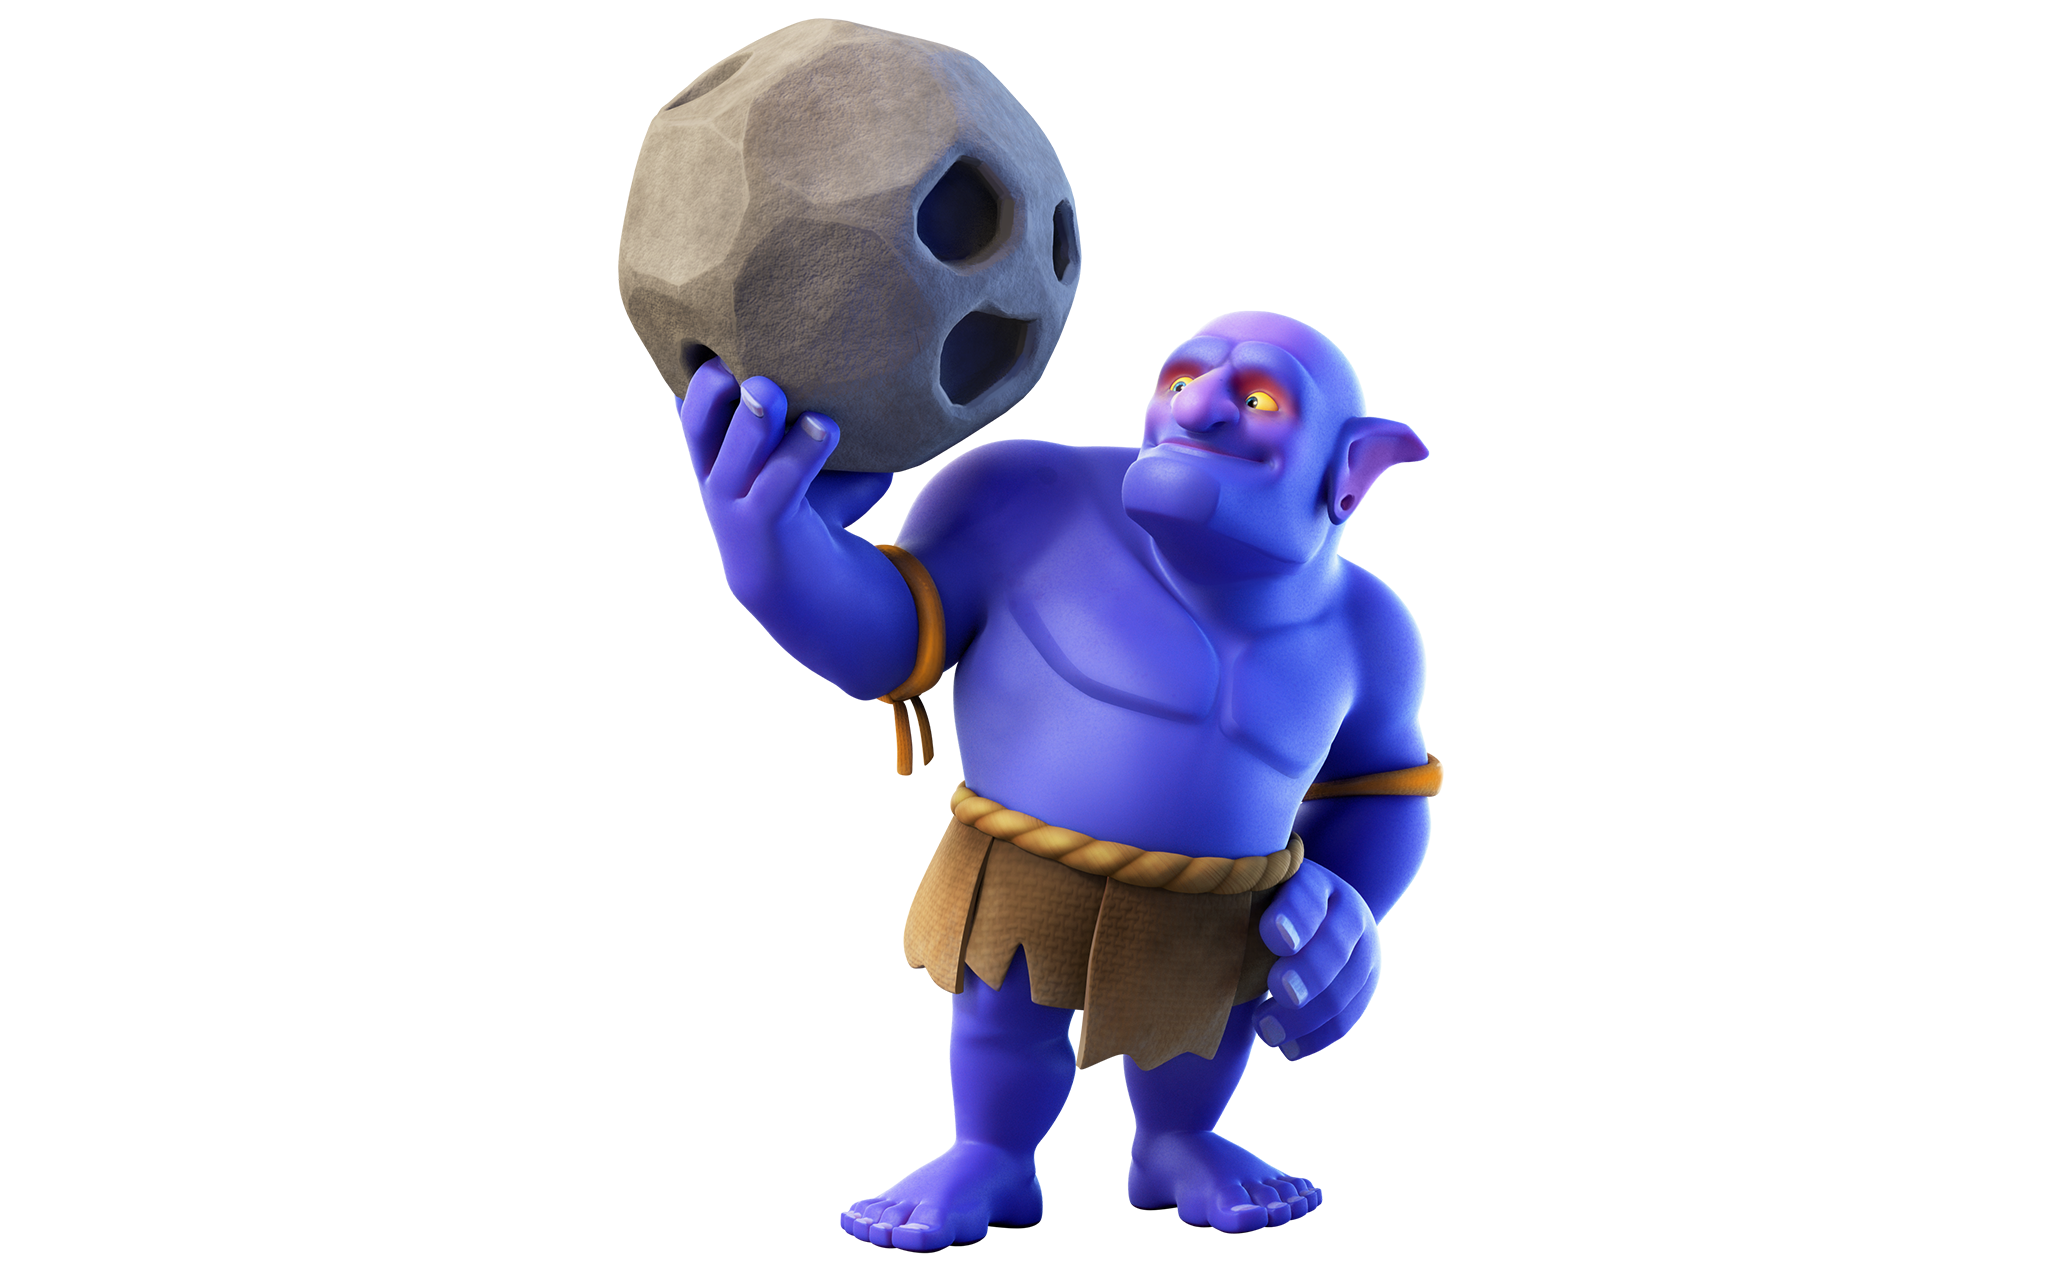 0019 Thebowler Png 2048 1280 Dessin Cartoon Clash Of Clans Jeux